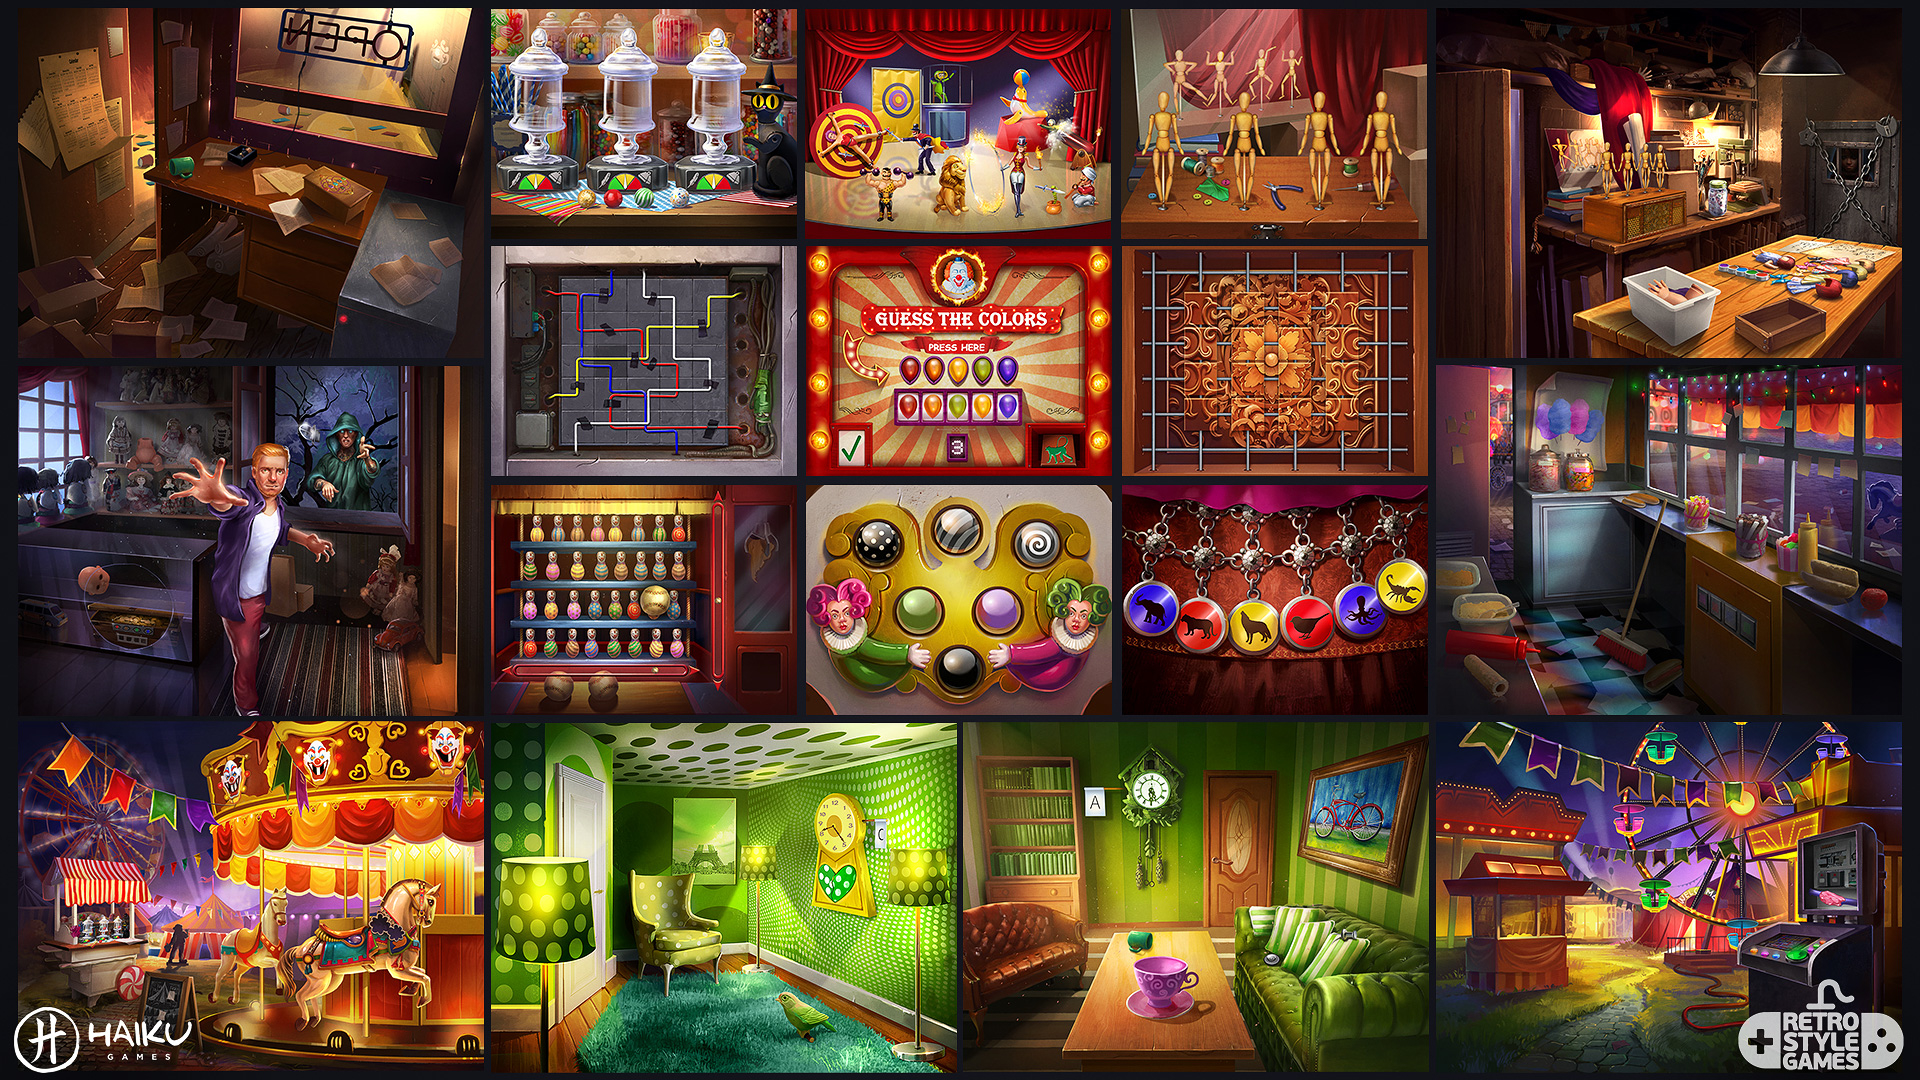 midnight 2d carnival full art sheet2 puzzles